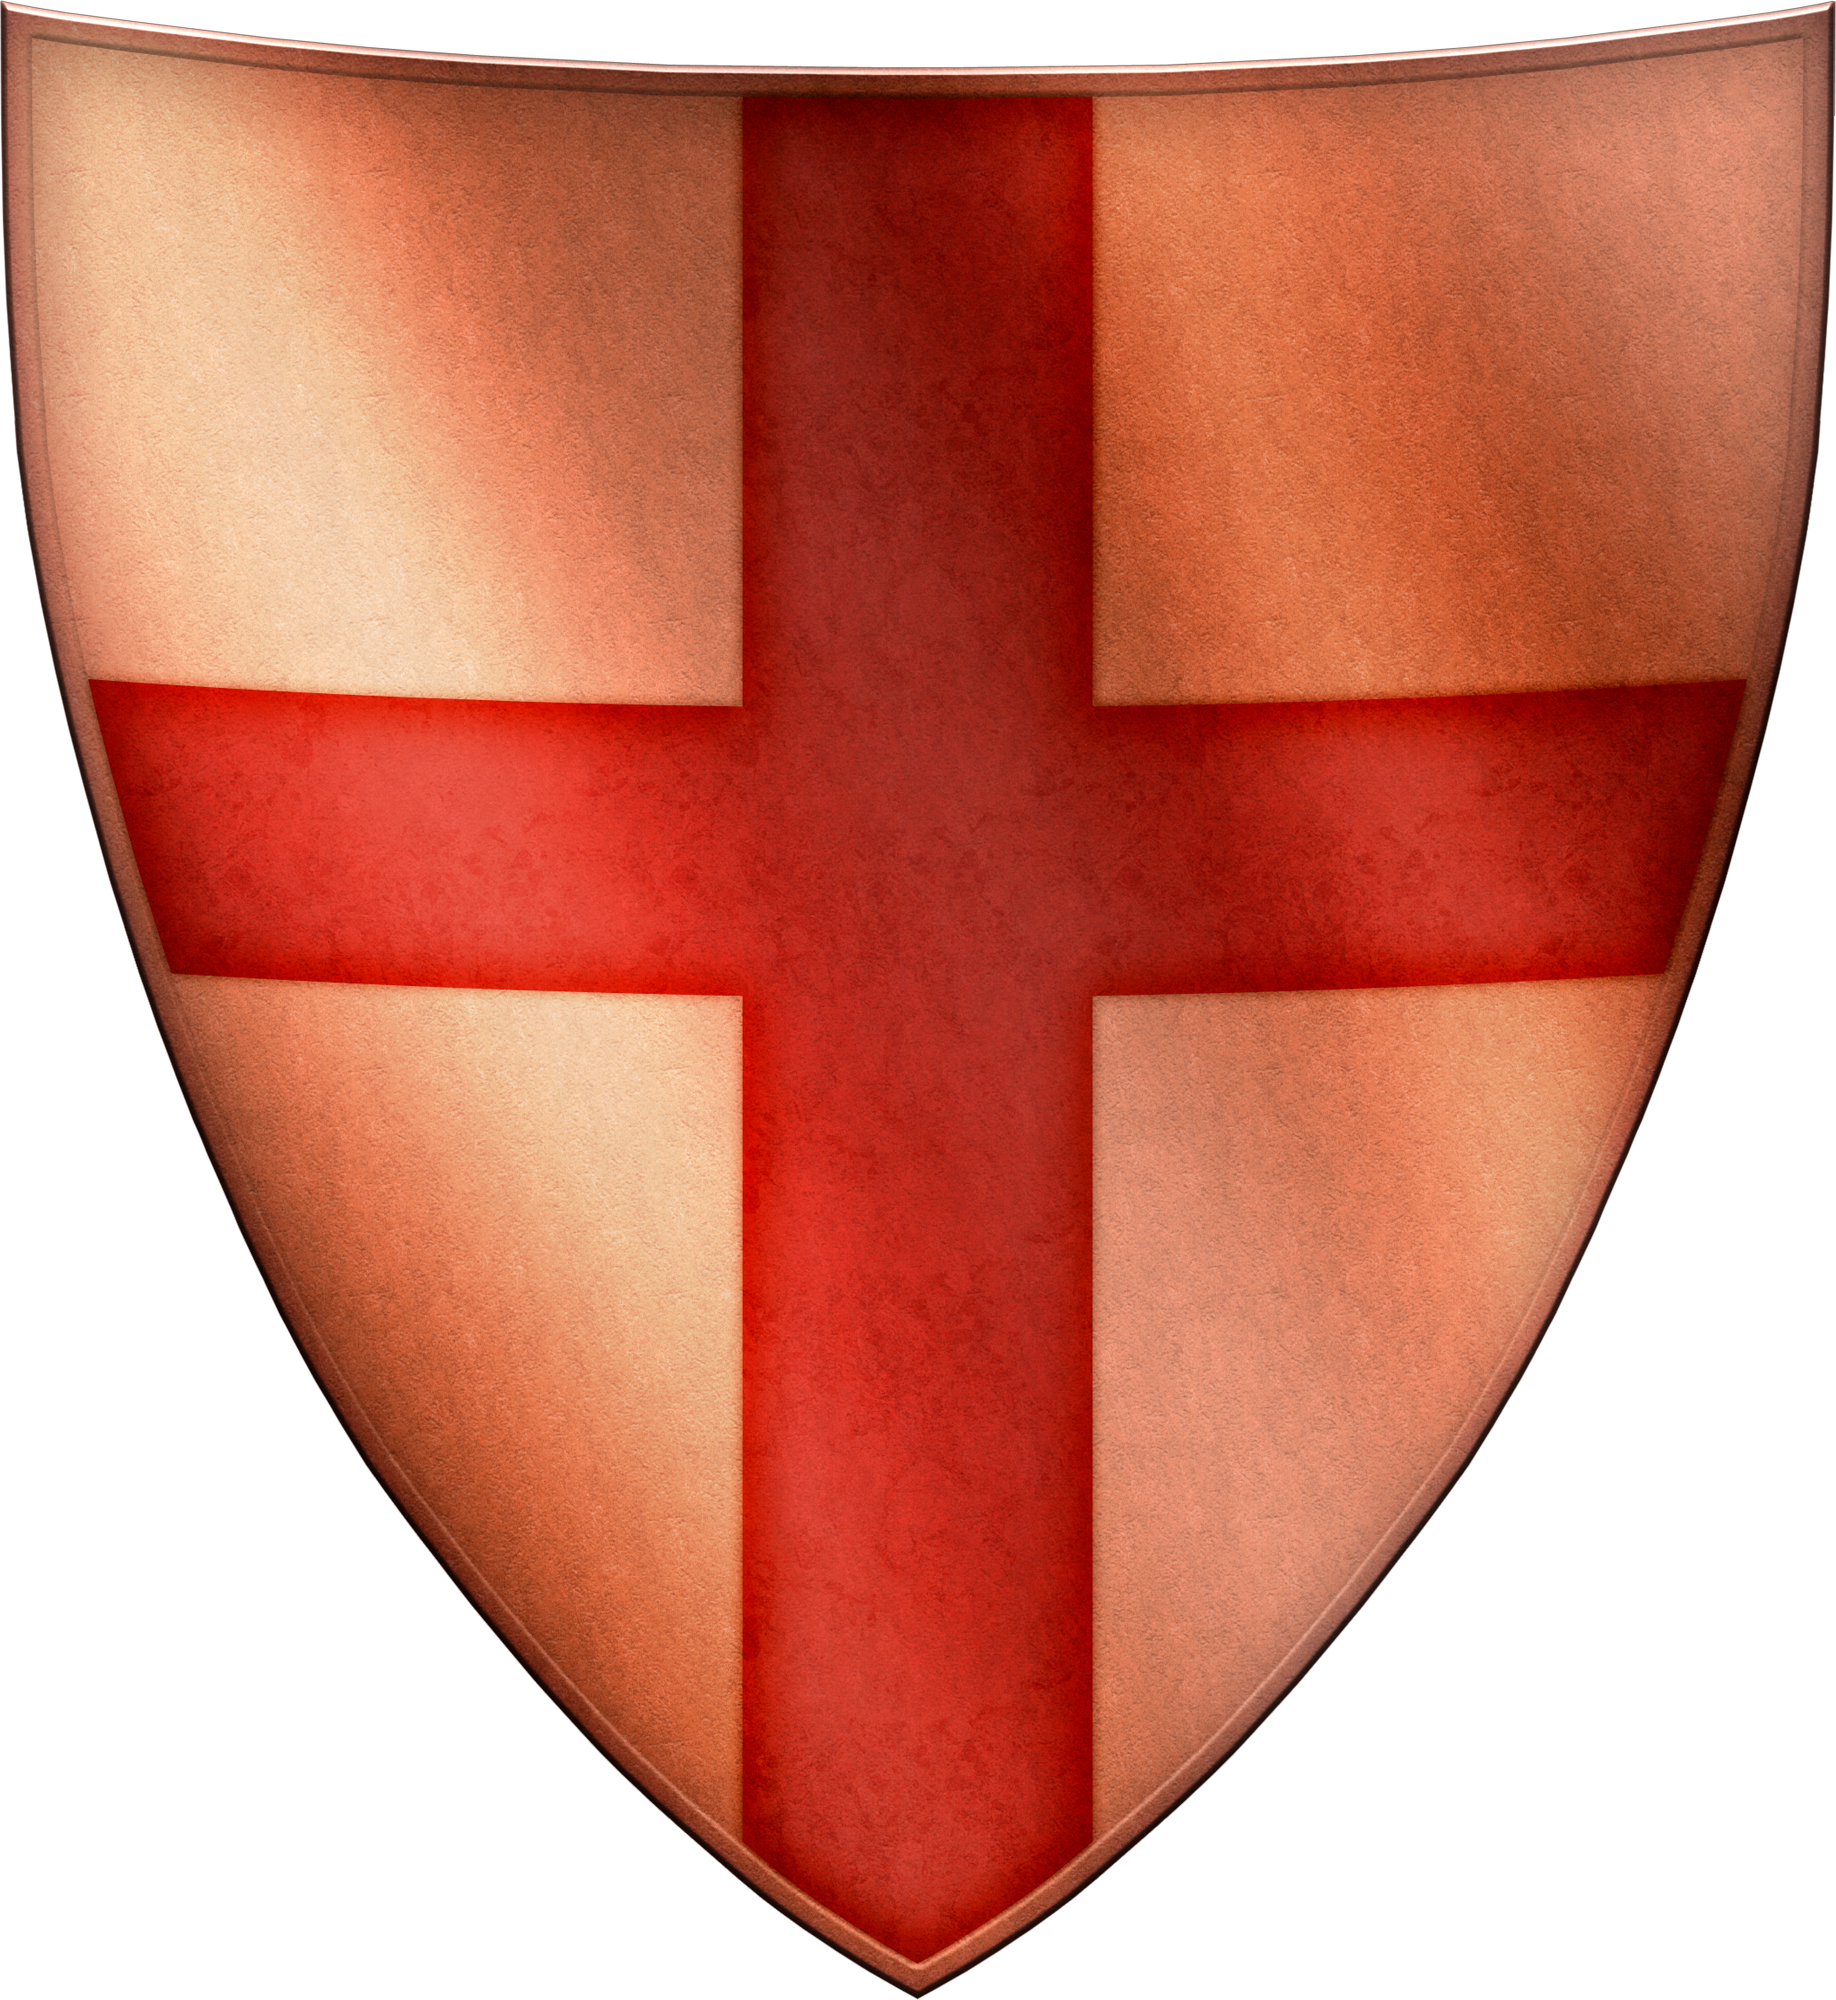 Shield clipart flag. Silver png image purepng